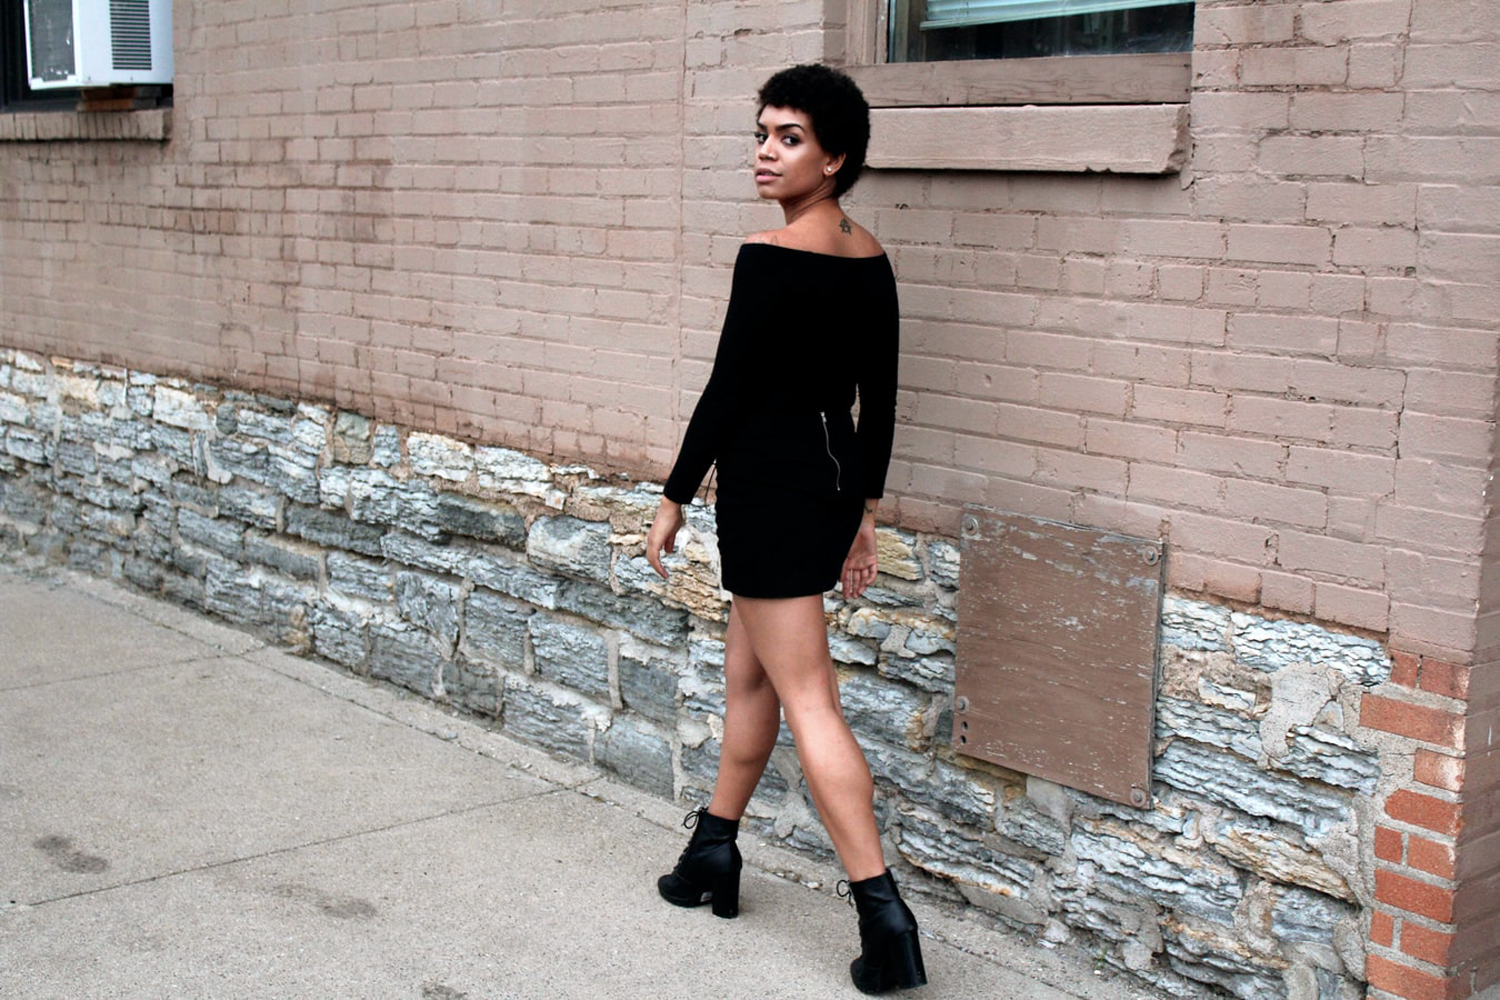 woman is wearing beautiful, all-black outfit